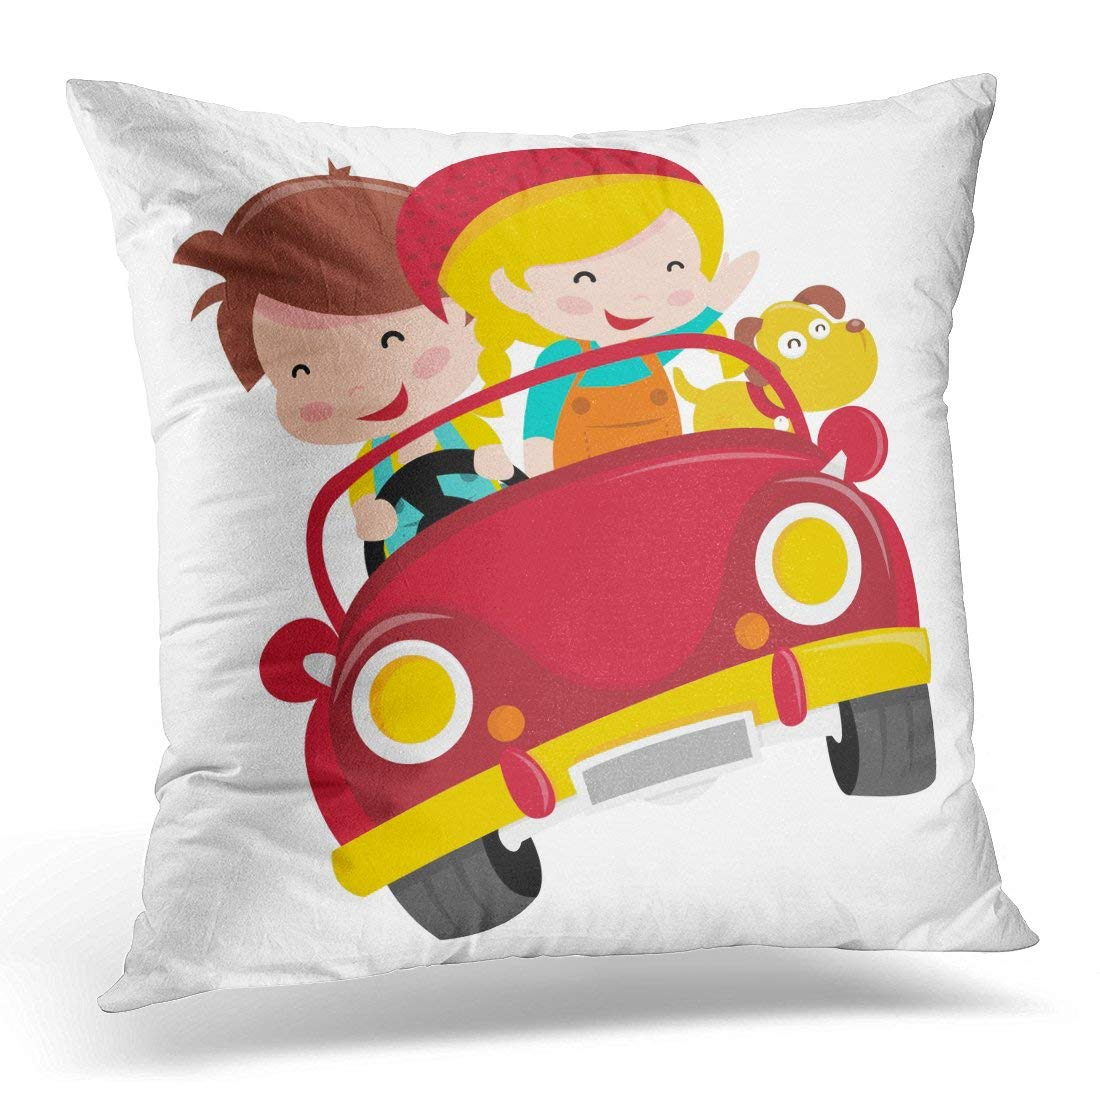 USART Driving Cartoon of Two Happy Kids Boy and Girl Riding Red Convertible Car with Their Pet Dog Travel Pillow Case Pillow Cover 20x20 inch